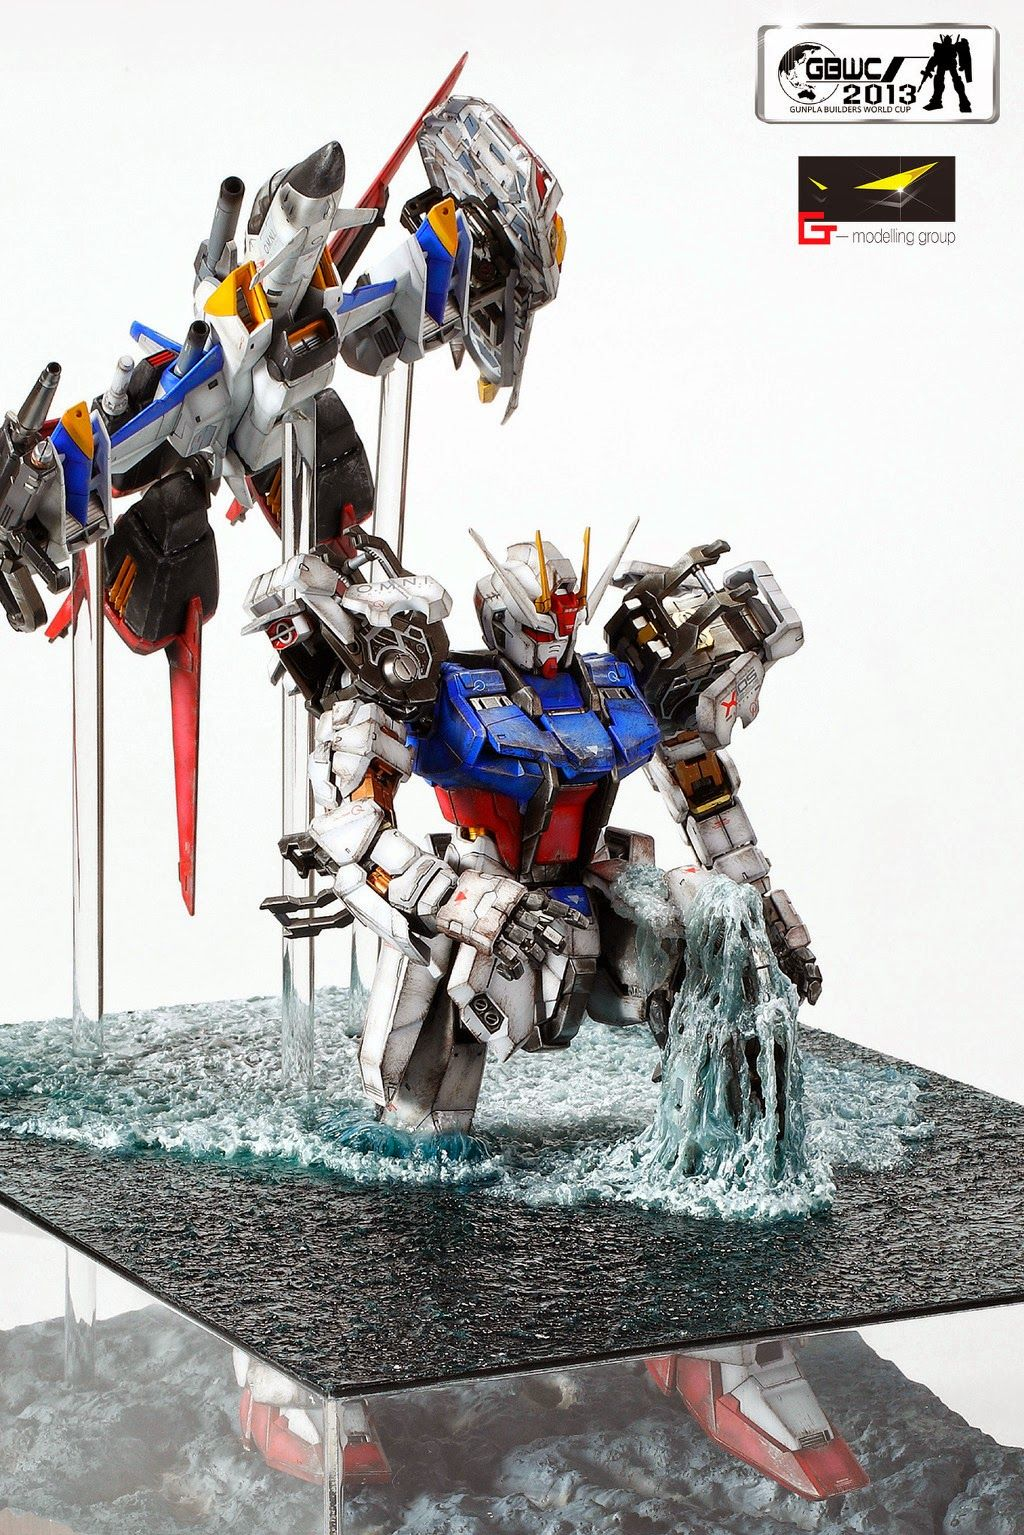 GUNDAM GUY: PG 1/60 Aile Strike Gundam 'Come On Home Within Two Hours!!' - Diorama Build (GBWC 2013 Entry)